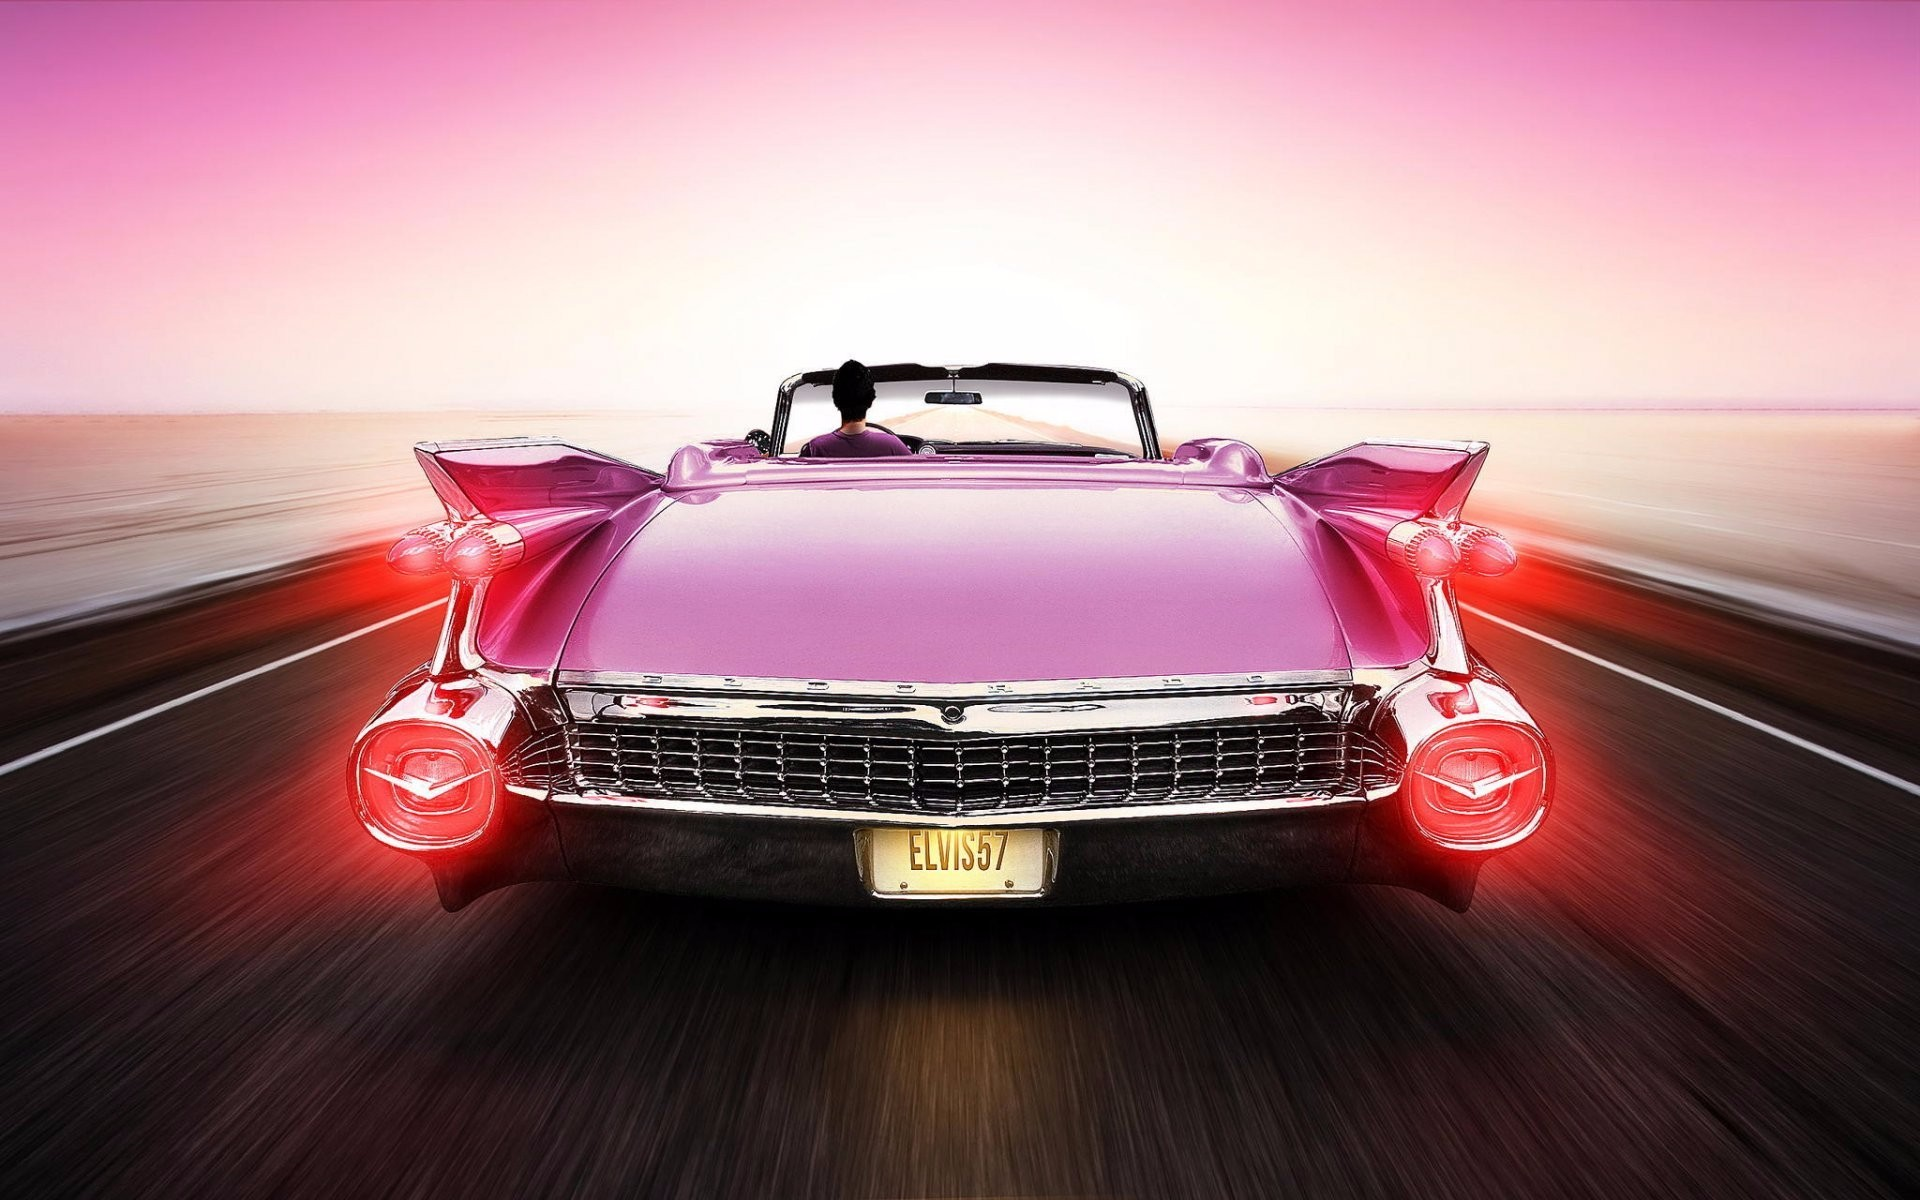 Cadillac hd cars 4k wallpapers images backgrounds - Cadillac wallpaper ...